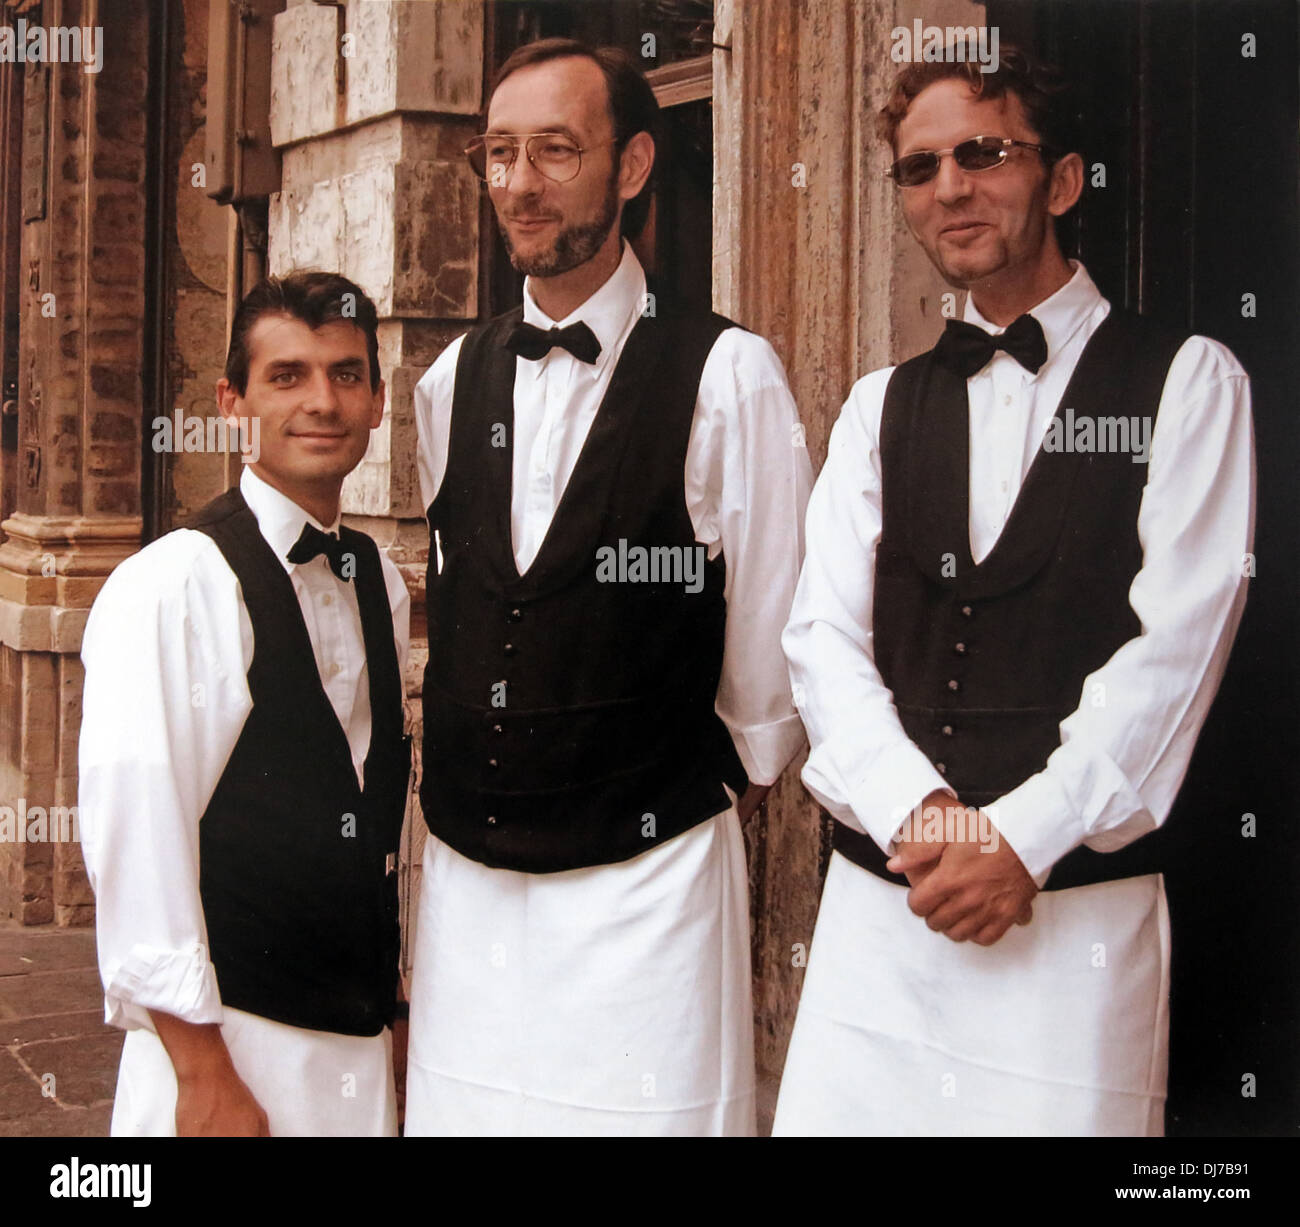 Three cool waiters garcons - Stock Image